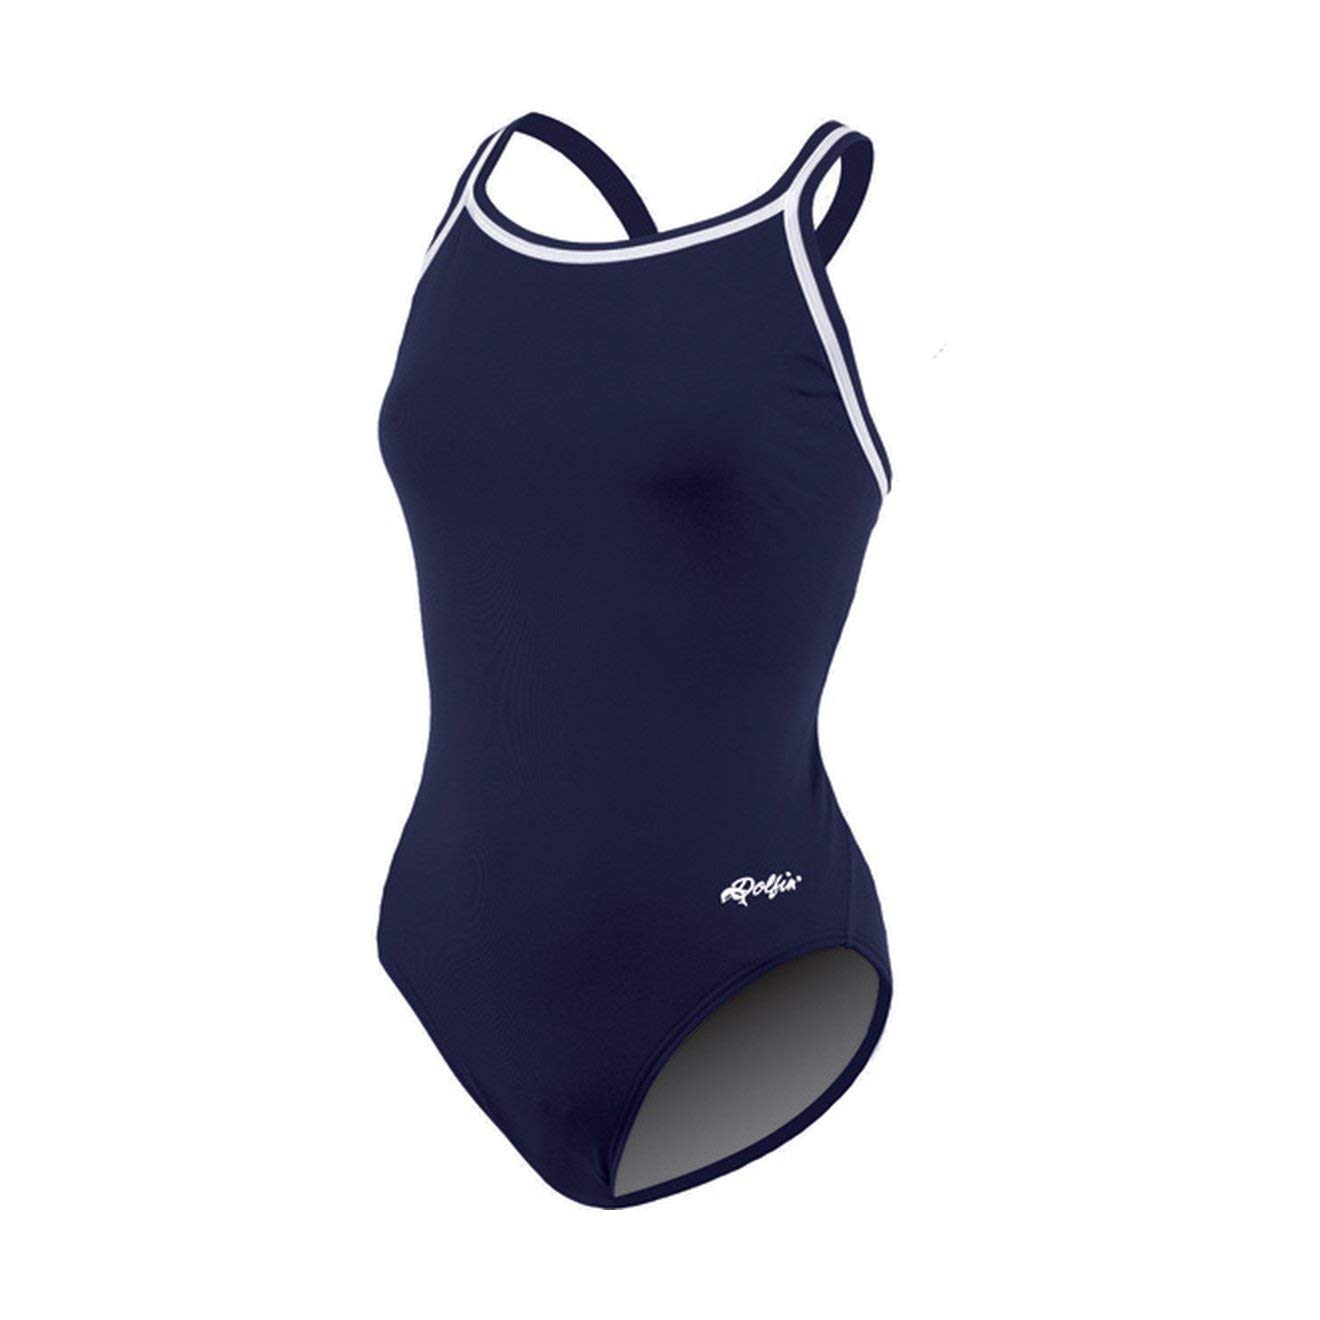 Dolfin Chloroban Team Solid Suit Womens Navy Size 34 by Dolfin